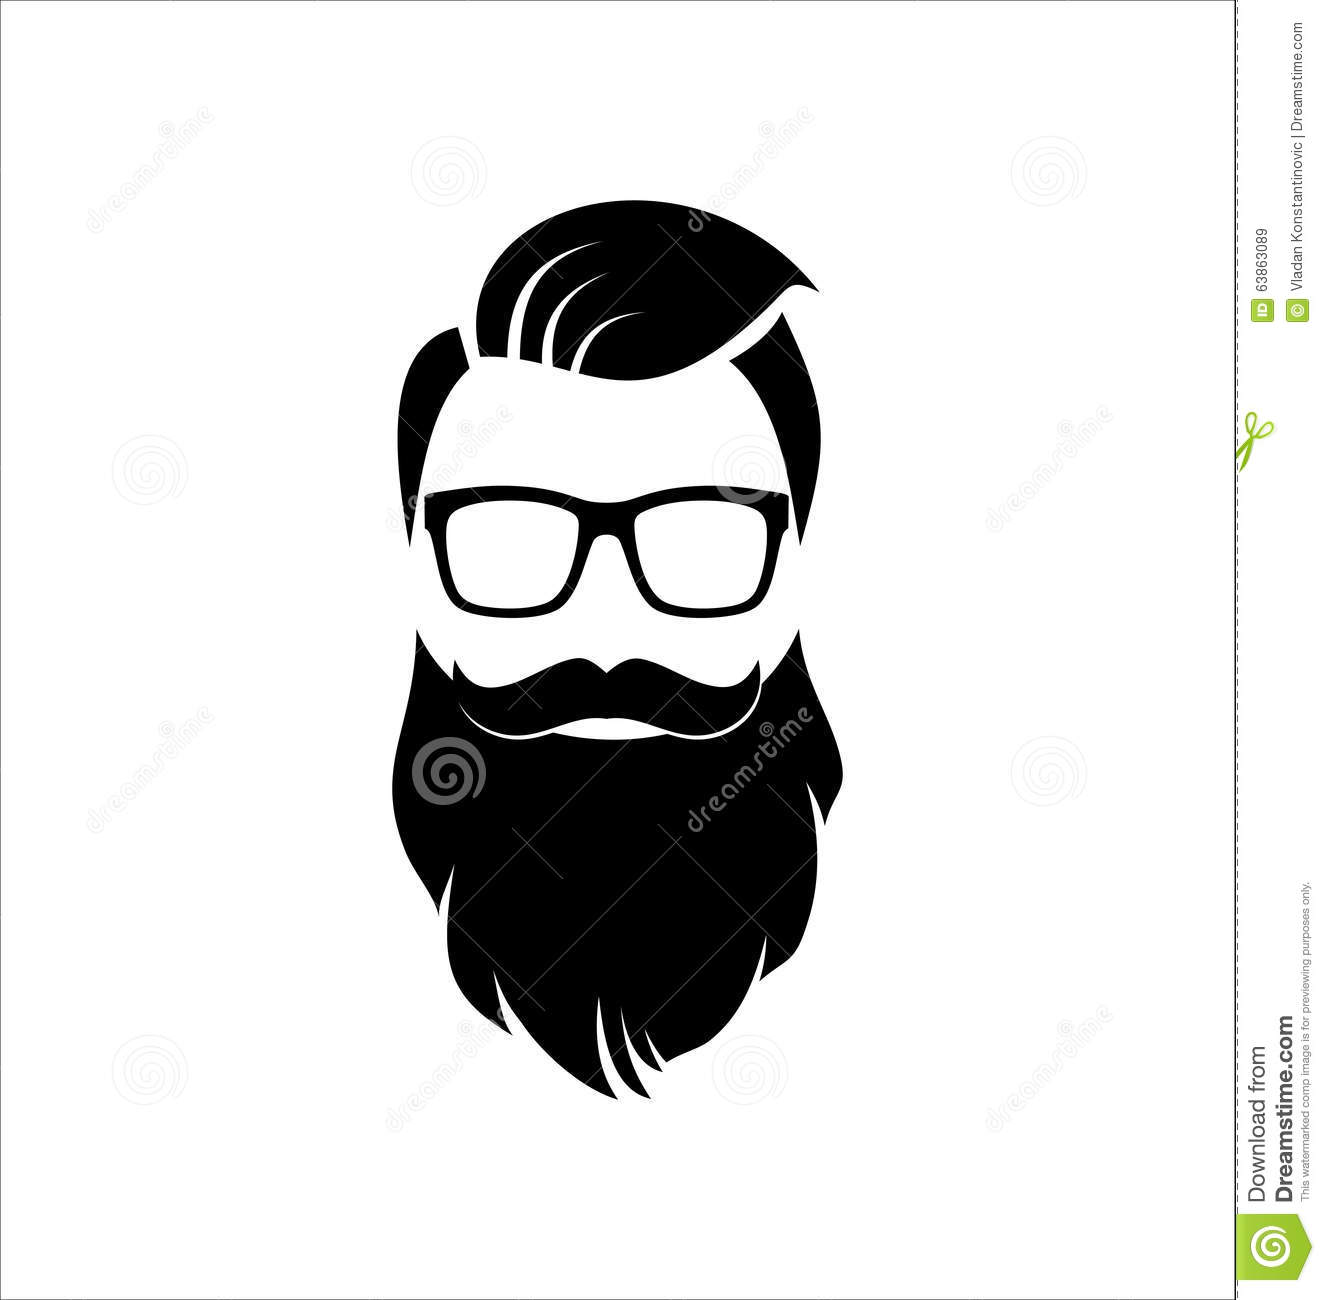 hipster black and white  hairstyle stock vector image gentleman clipart black and white gentleman clipart black and white